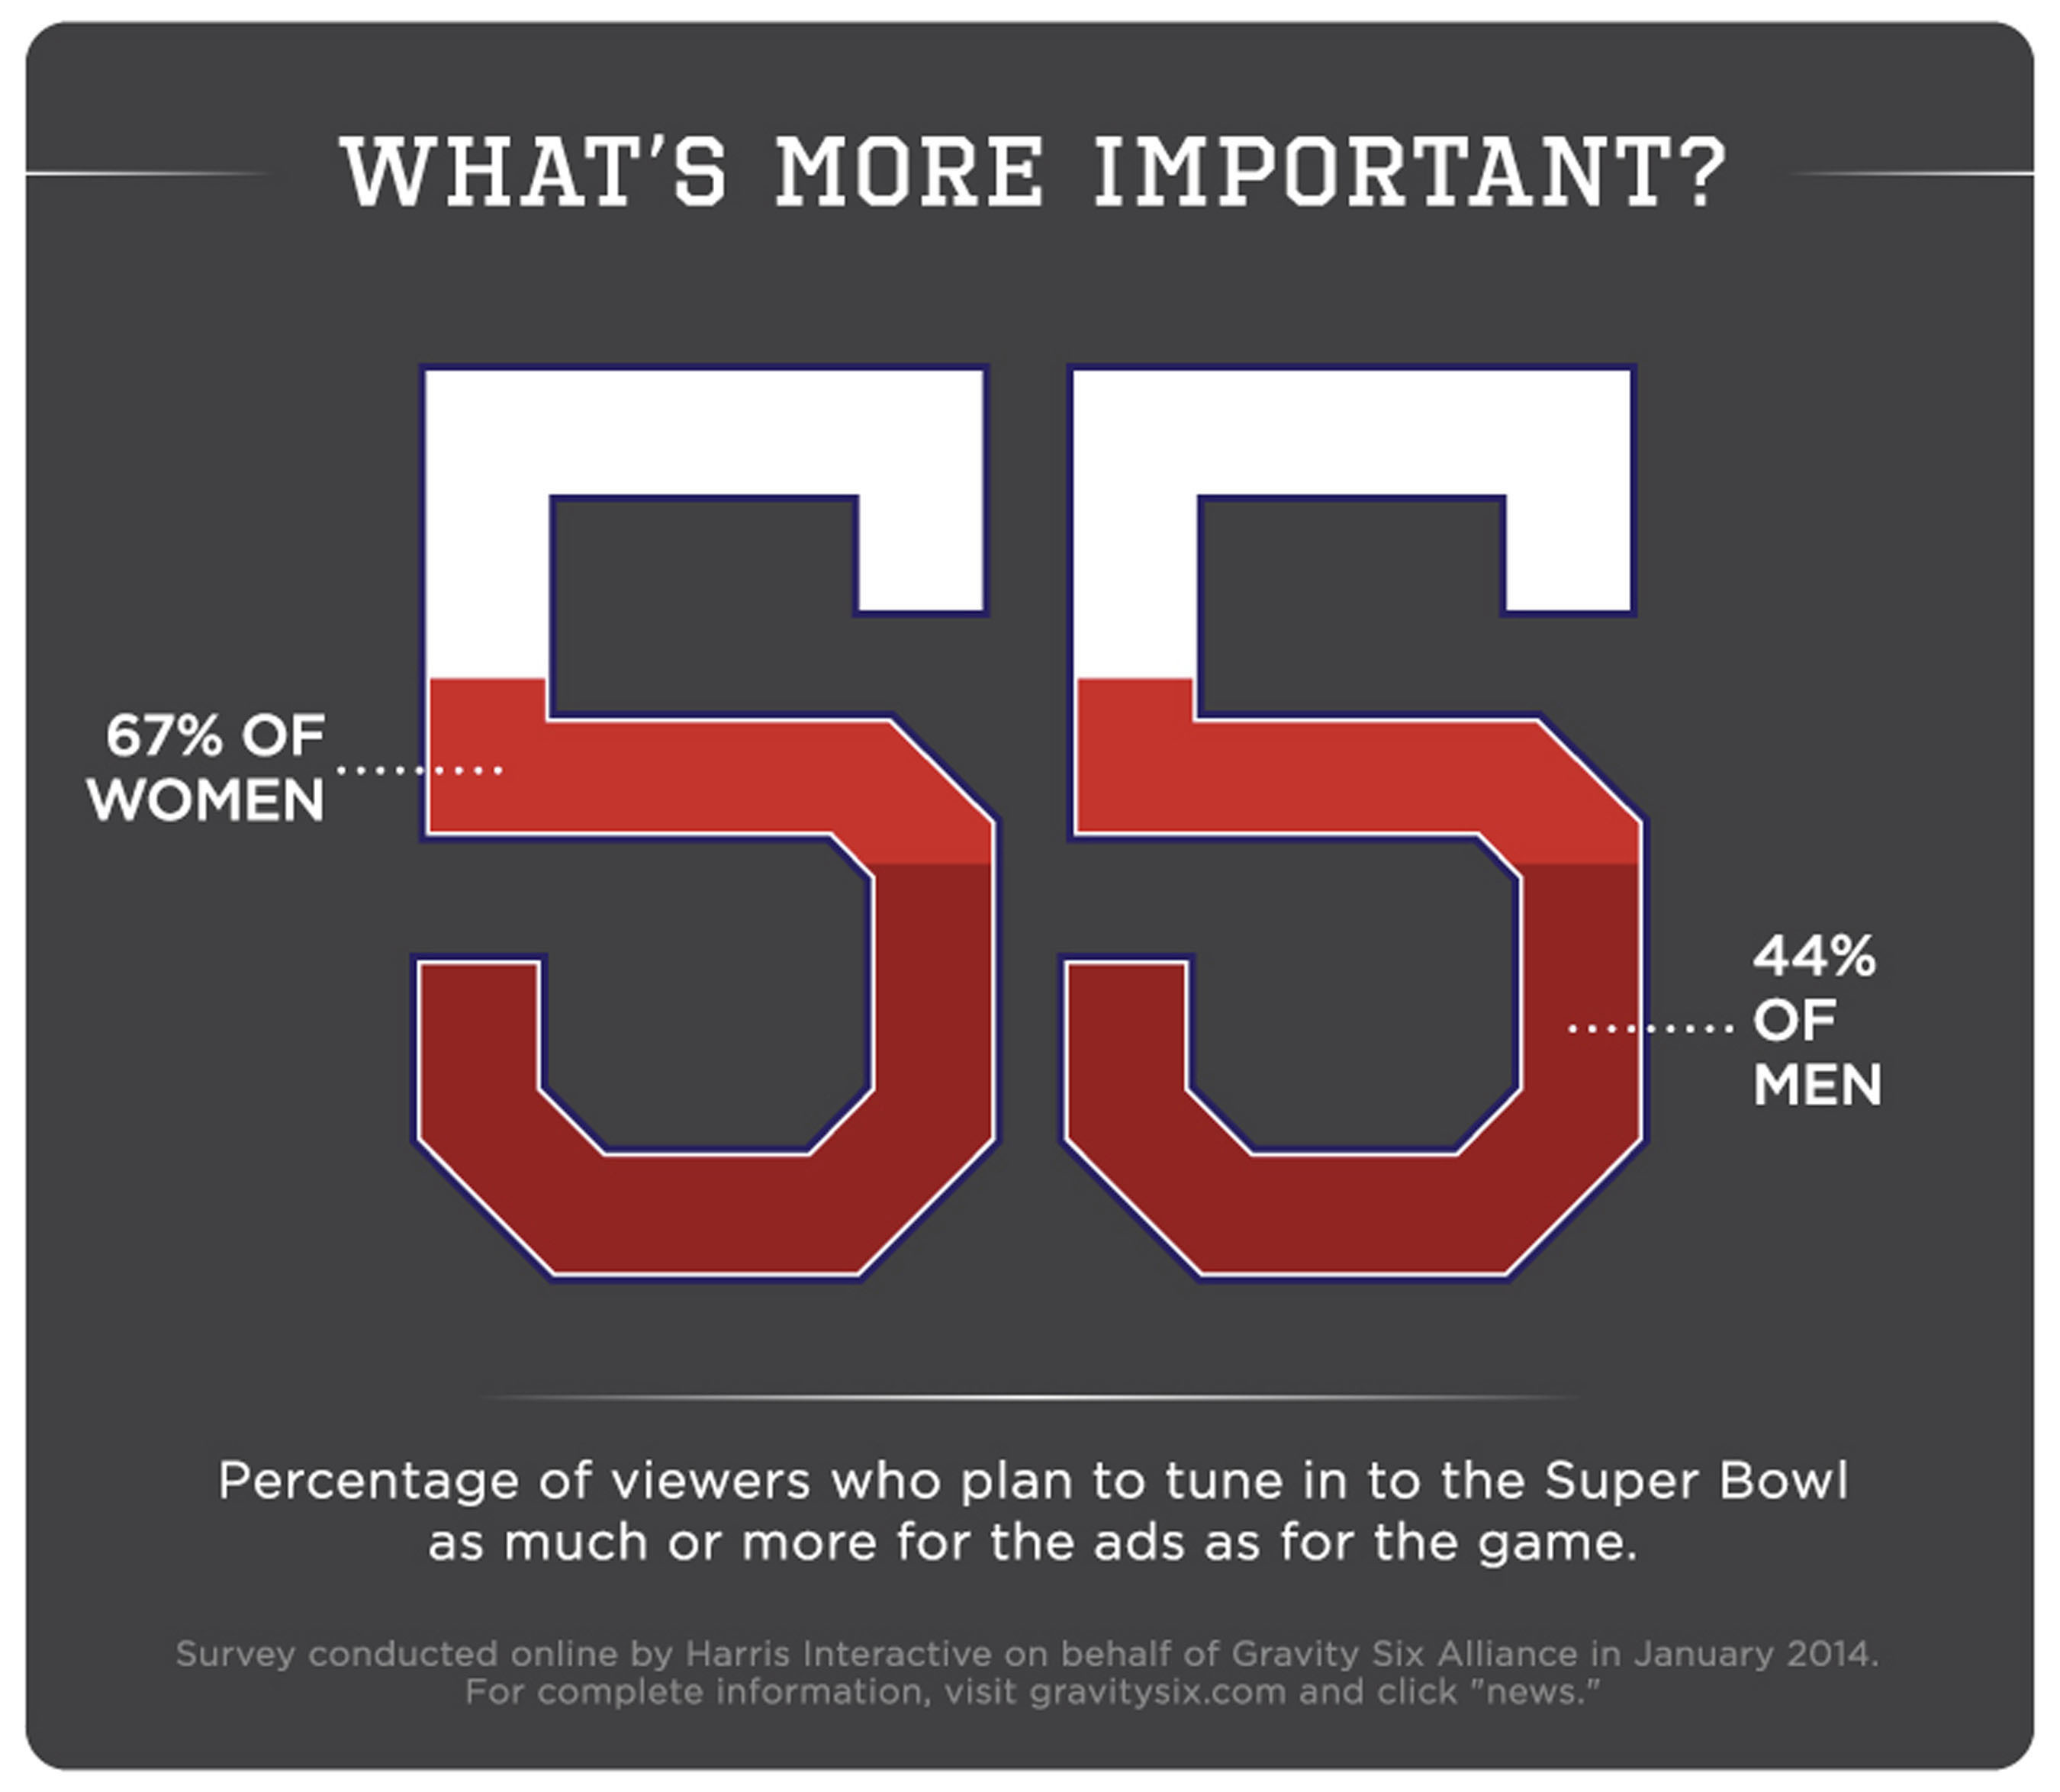 55% of US adults plan to tune in to Super Bowl XLVIII as much or more for the ads as for the game, according to  ...